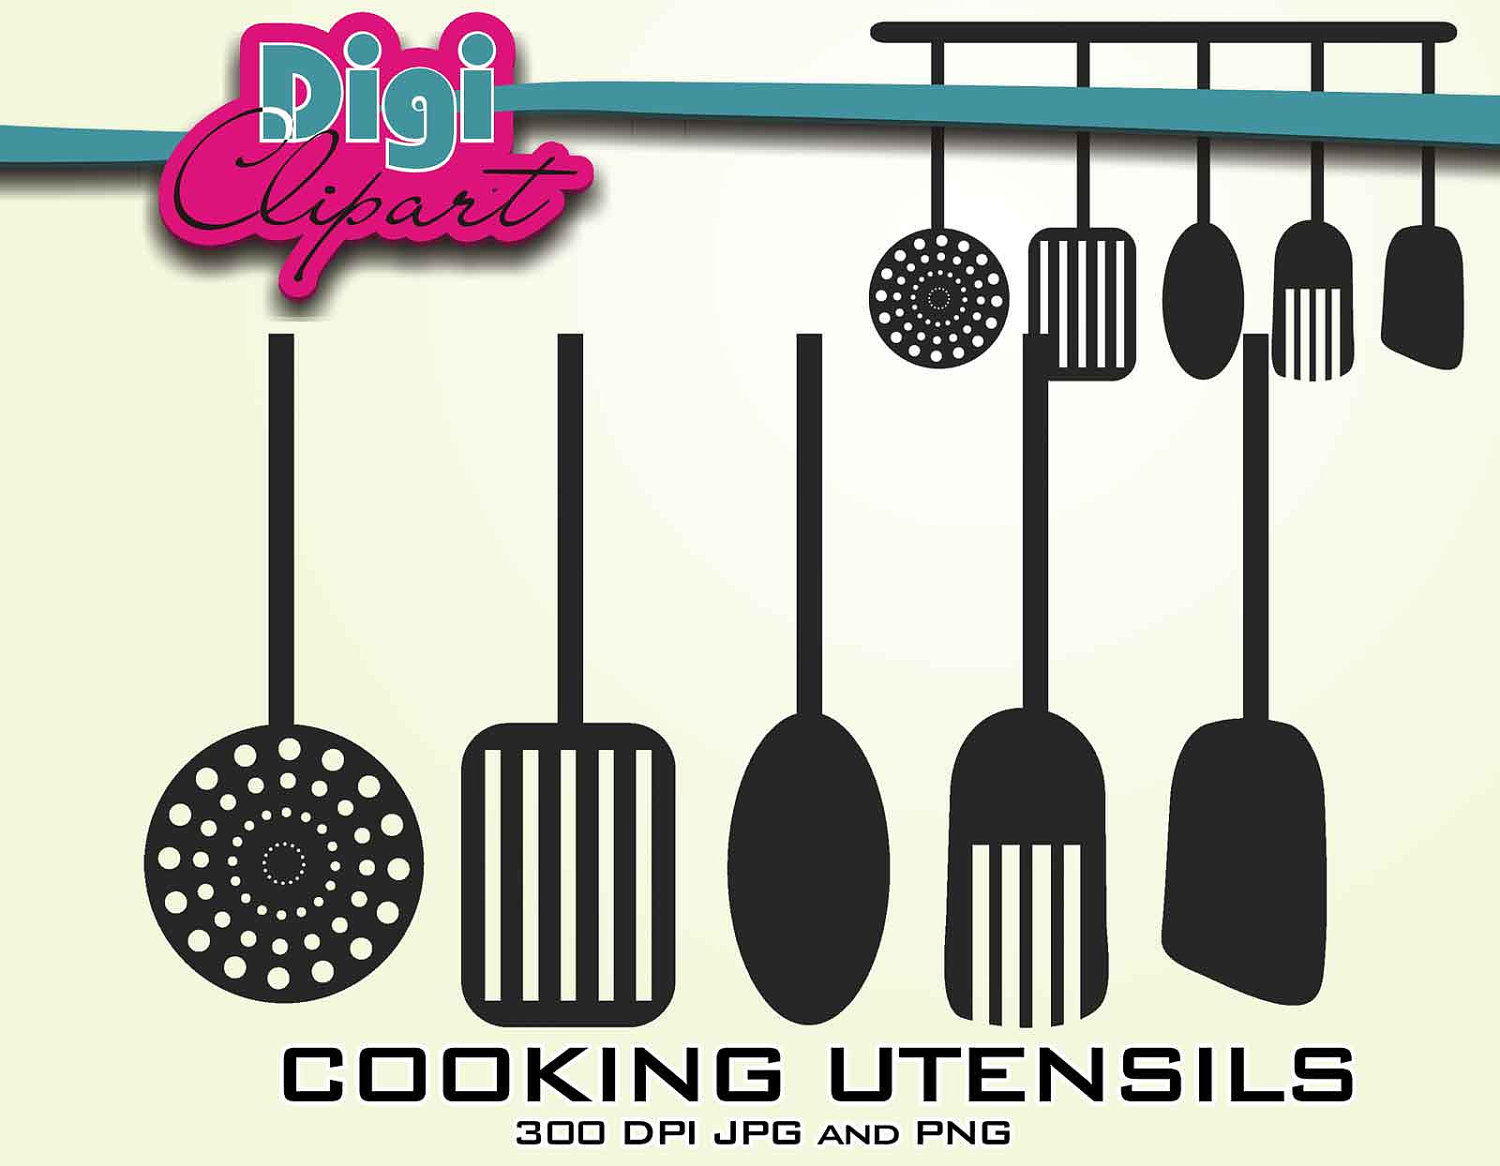 Kitchen Cooking Utensils Silhouette Clip Art By Digifotosclipart